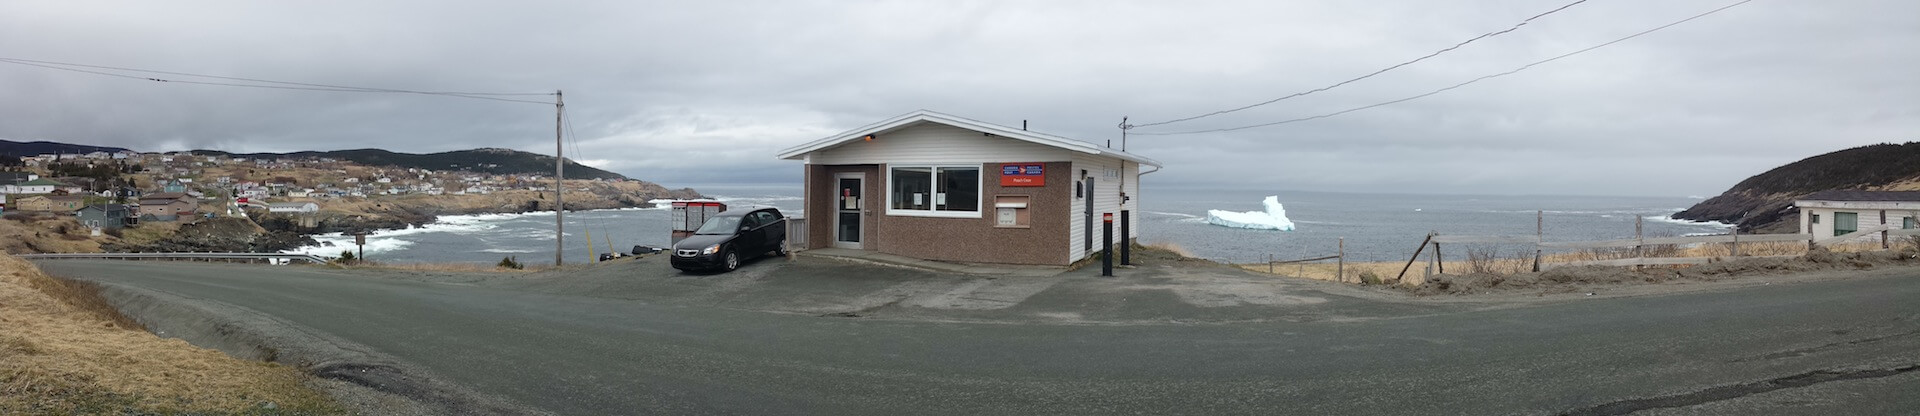 Panoramic image of a post office on the coast of Newfoundland